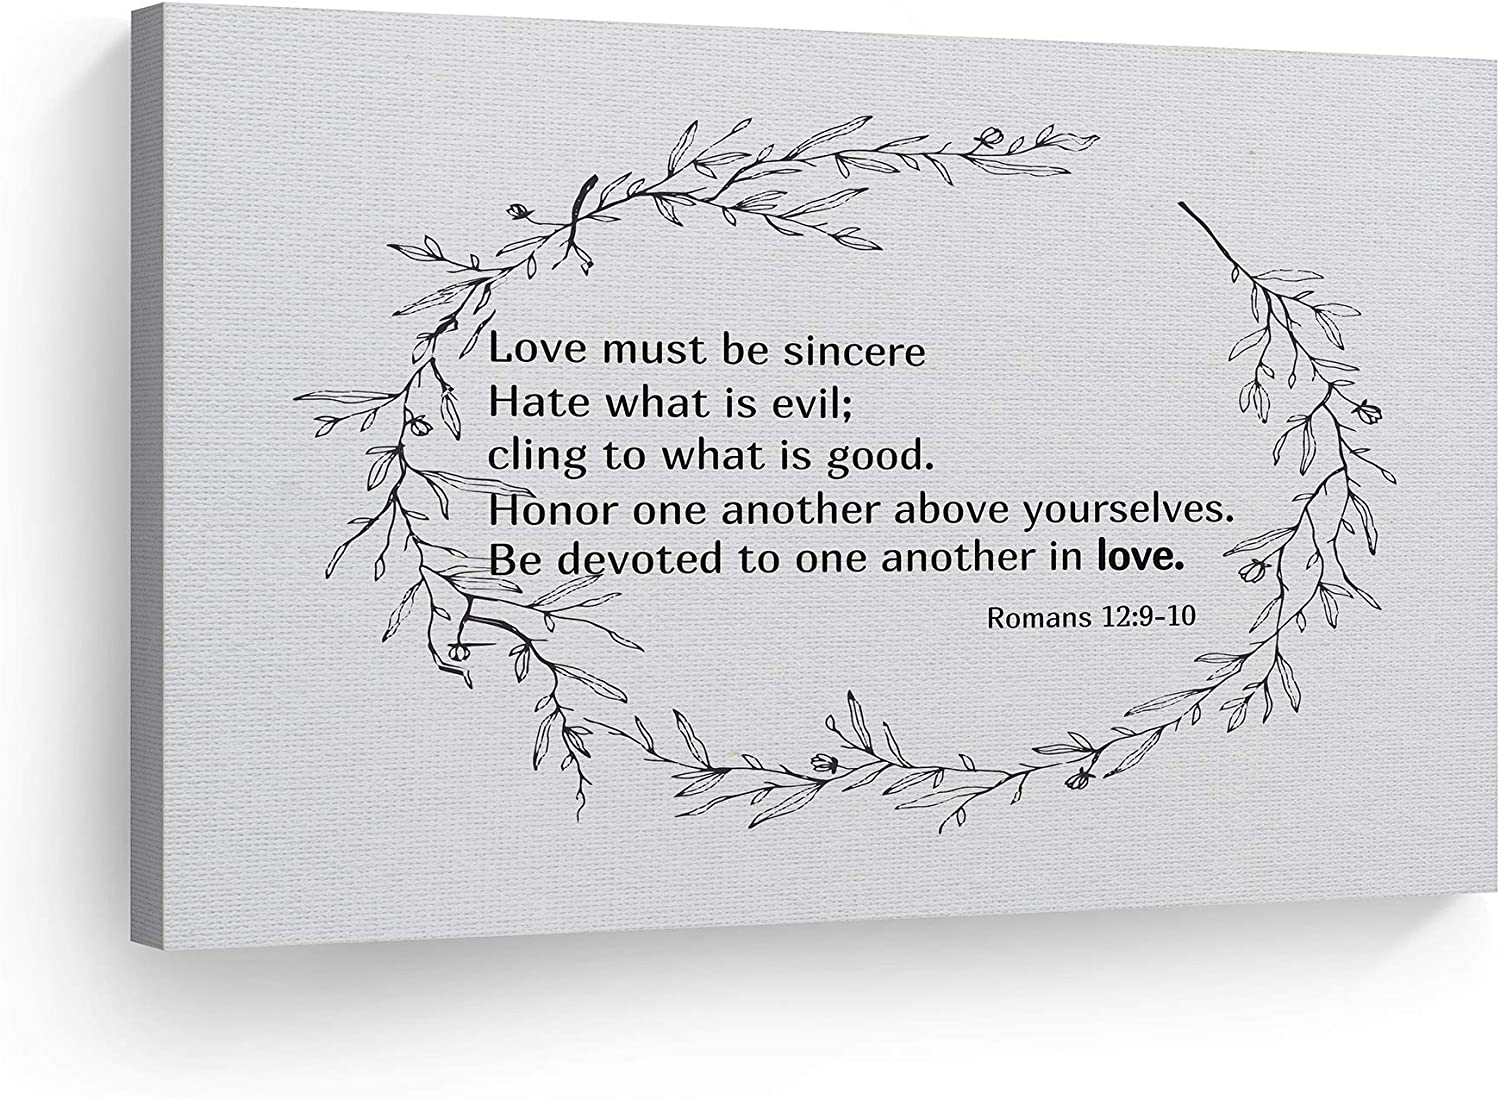 Amazon Com Smile Art Design Romans 12 9 10 Love Must Be Sincere Quote Scripture Wall Art Bible Verse Canvas Print Rustic Home Decor Ready To Hang Made In The Usa 8x12 Posters Prints